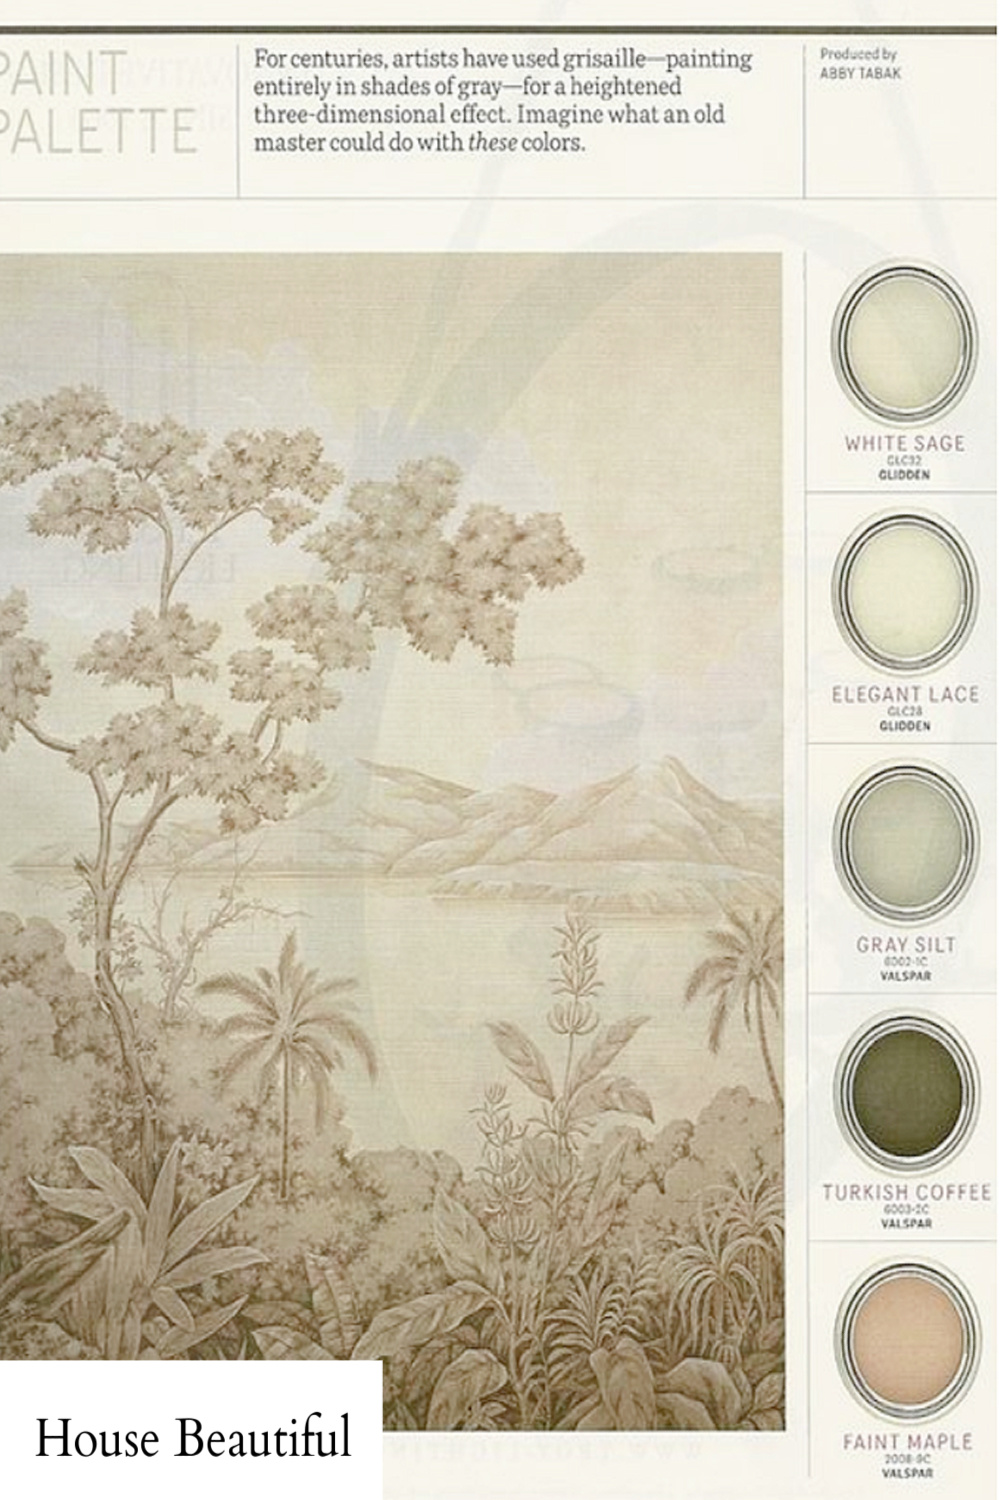 Grisaille palette paint colors - varying shades of grey and a beautiful painting (House Beautiful). #grisaille #paintpalette #paintcolors